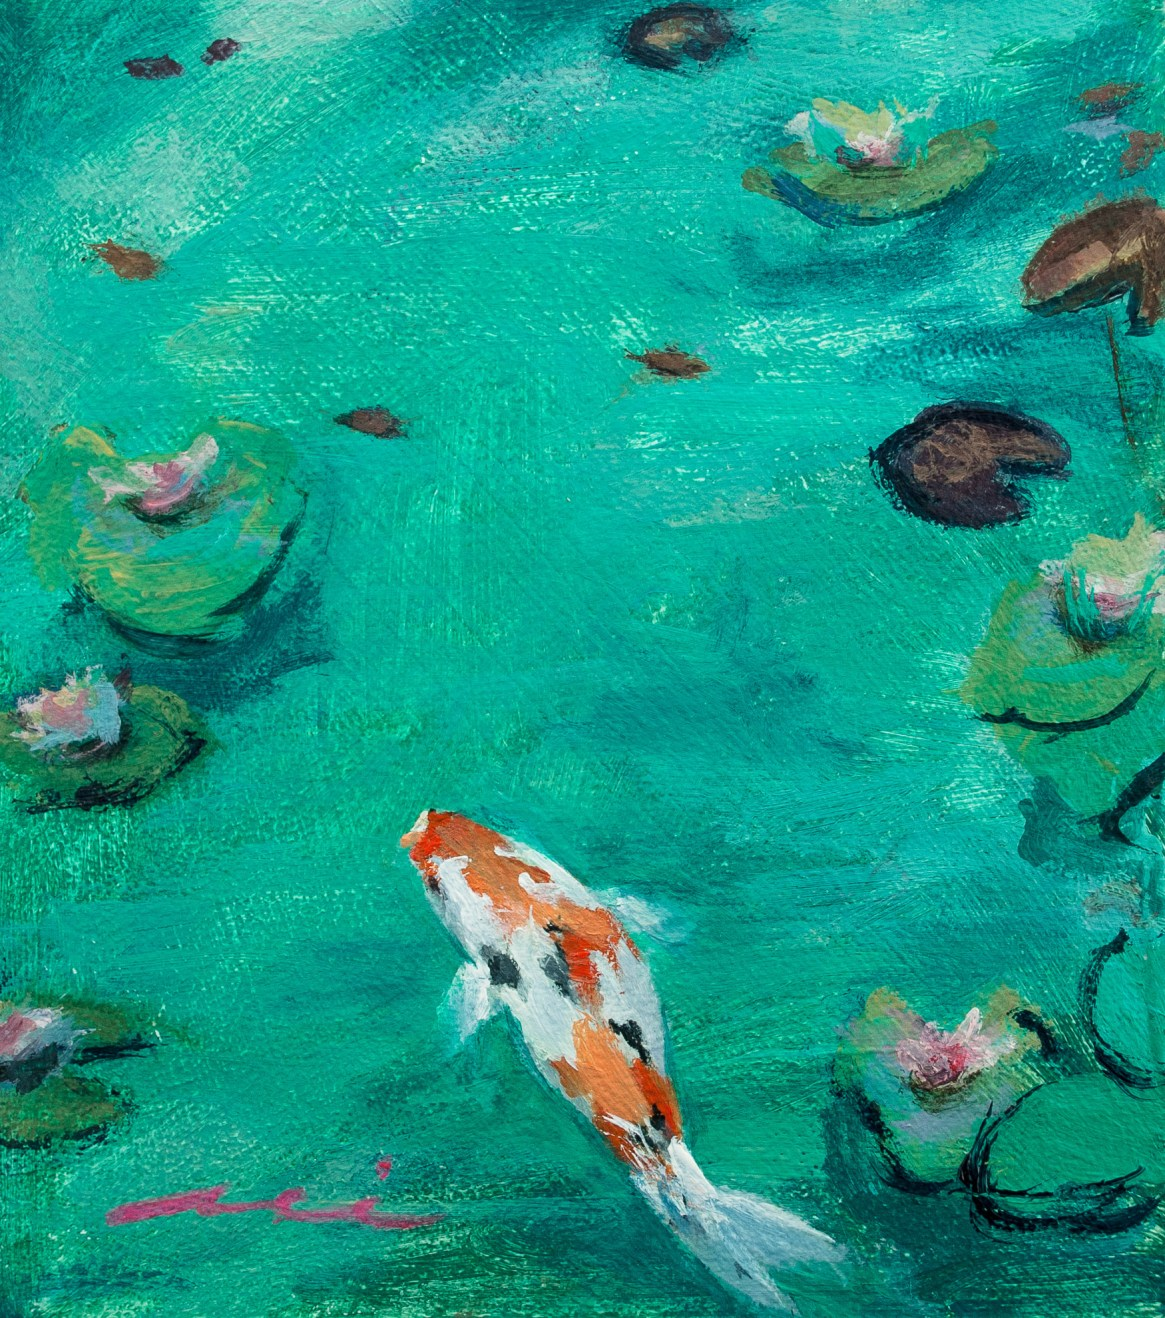 Koi in Water Garden, 2017